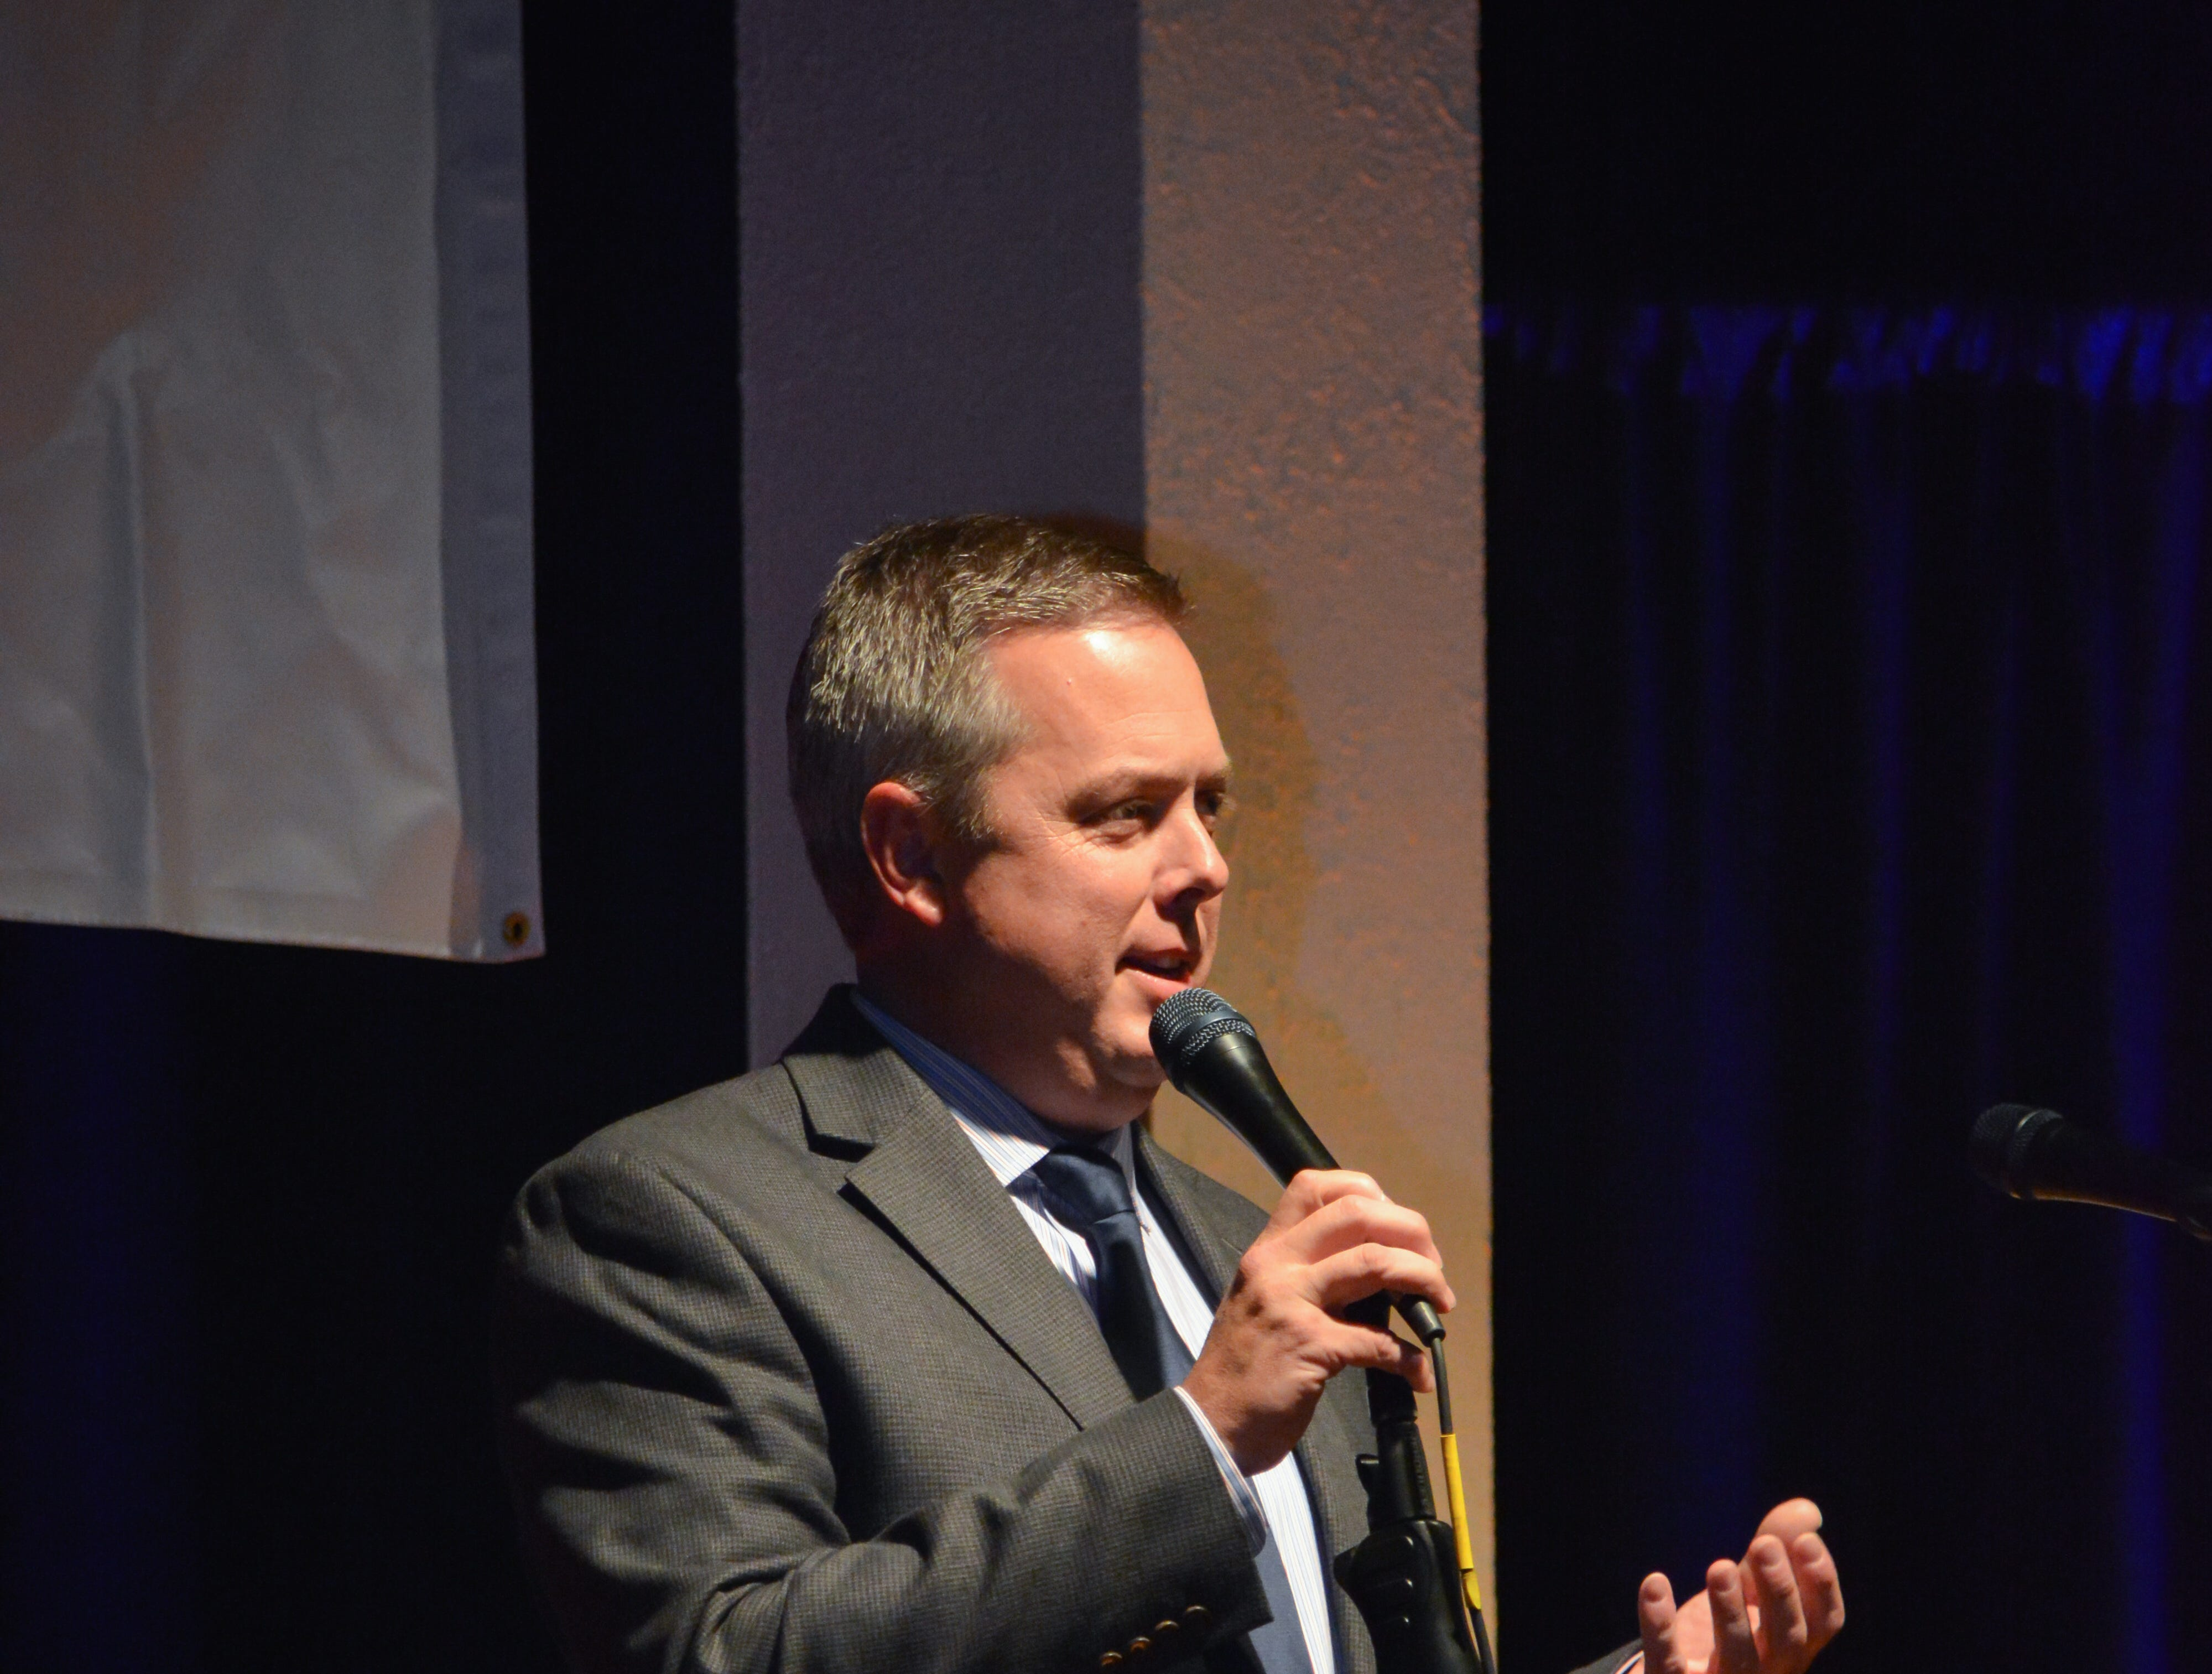 """Steve Leonard, CEO of Peninsula Regional Medical Center, shares a few words at the Minds in Motion Museum """"A Wonderland Adventure Gala"""" on Nov. 3, 2018, held at the Wicomico Youth & Civic Center in Salisbury, Maryland."""